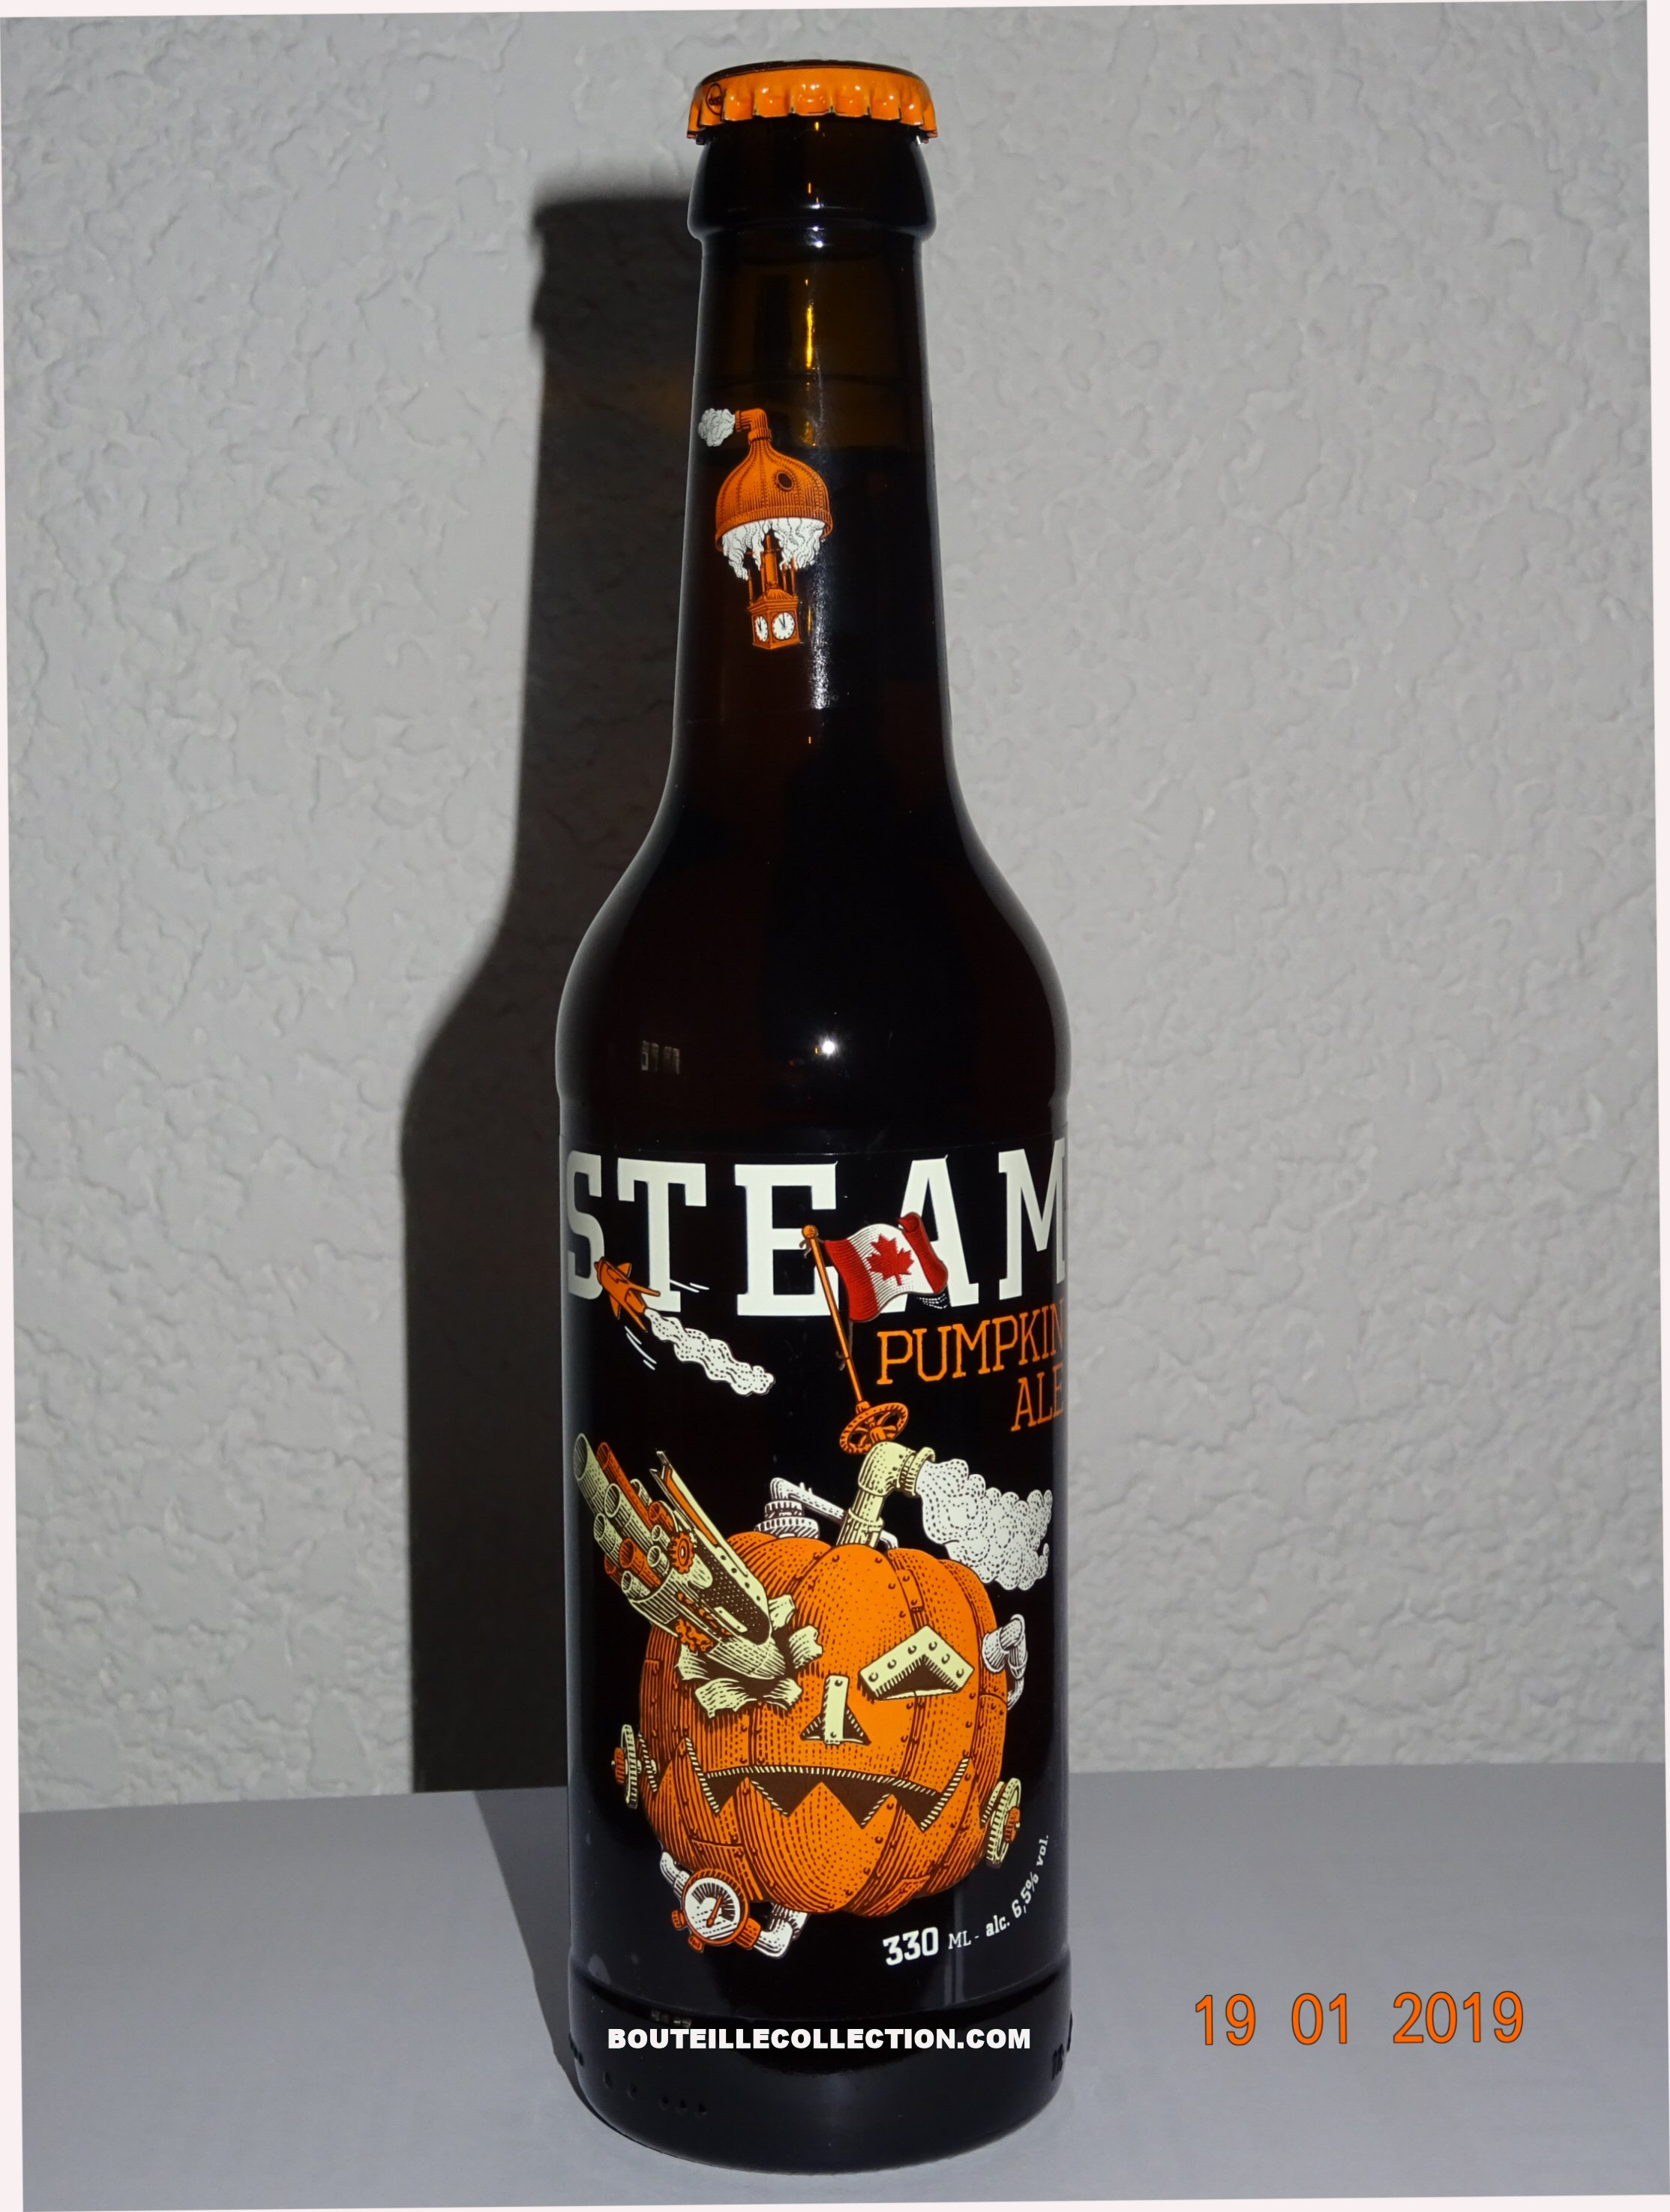 STEAM PUMPKIN ALE 33CL B   .JPG